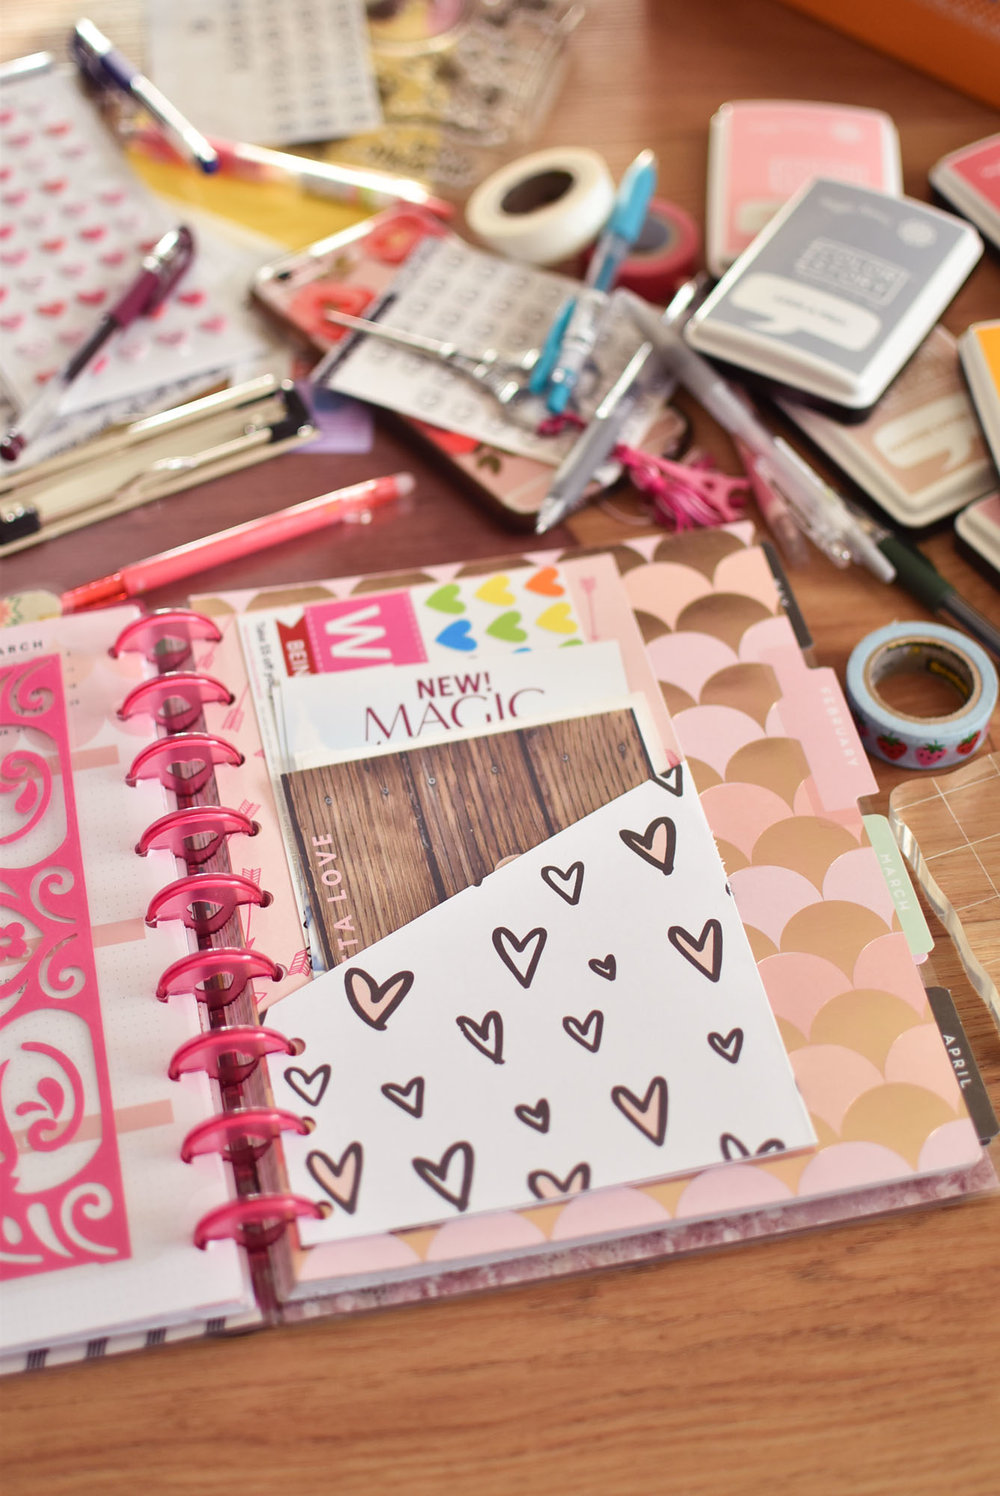 The Happy Planner: Stuff I love, how I use it and more! — Hey Porkchop!